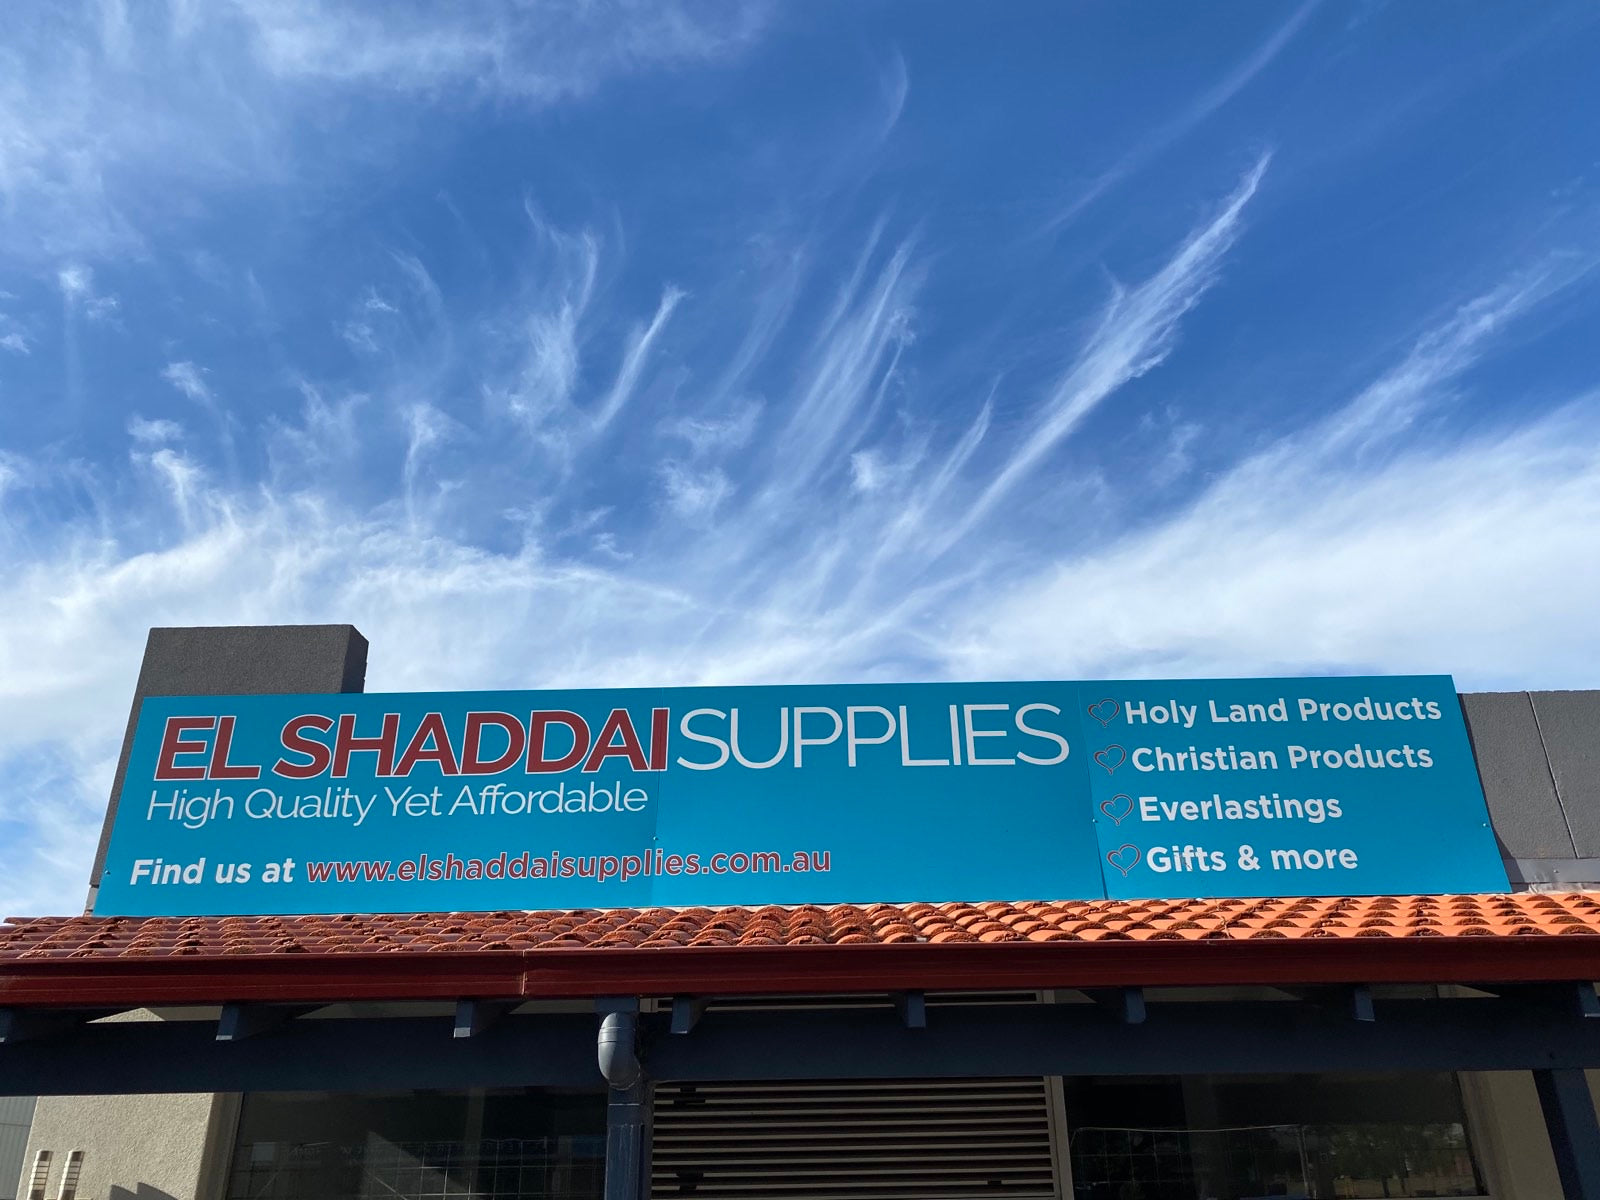 El Shaddai Supplies Shop Front